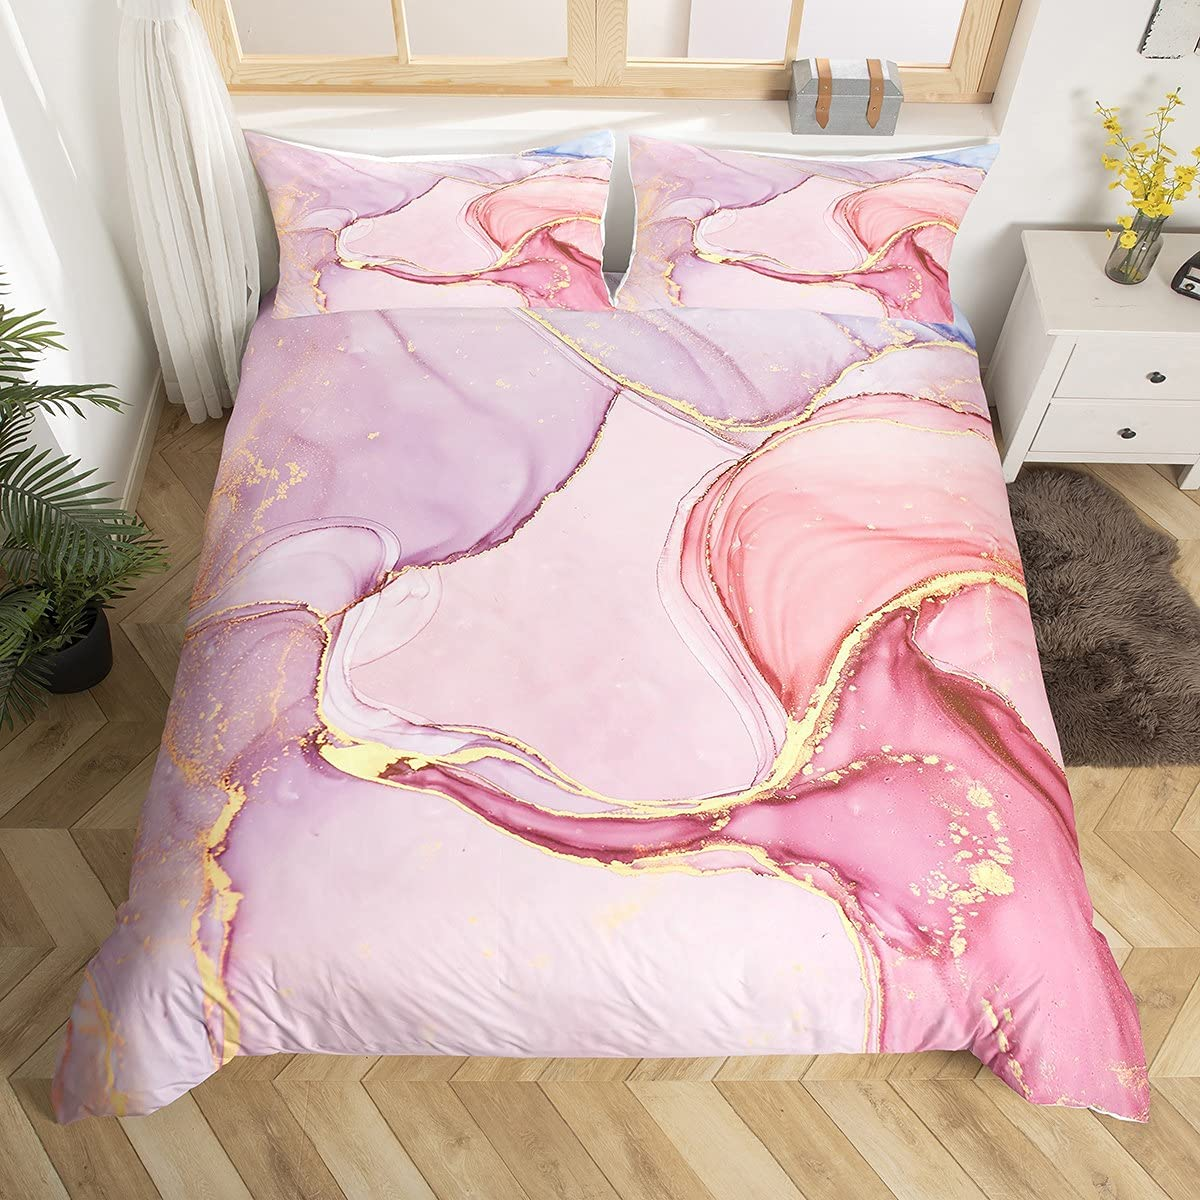 Pink Marble Duvet Cover Twin Size for Abstract Lowest price challenge Oklahoma City Mall Women Adult Girls